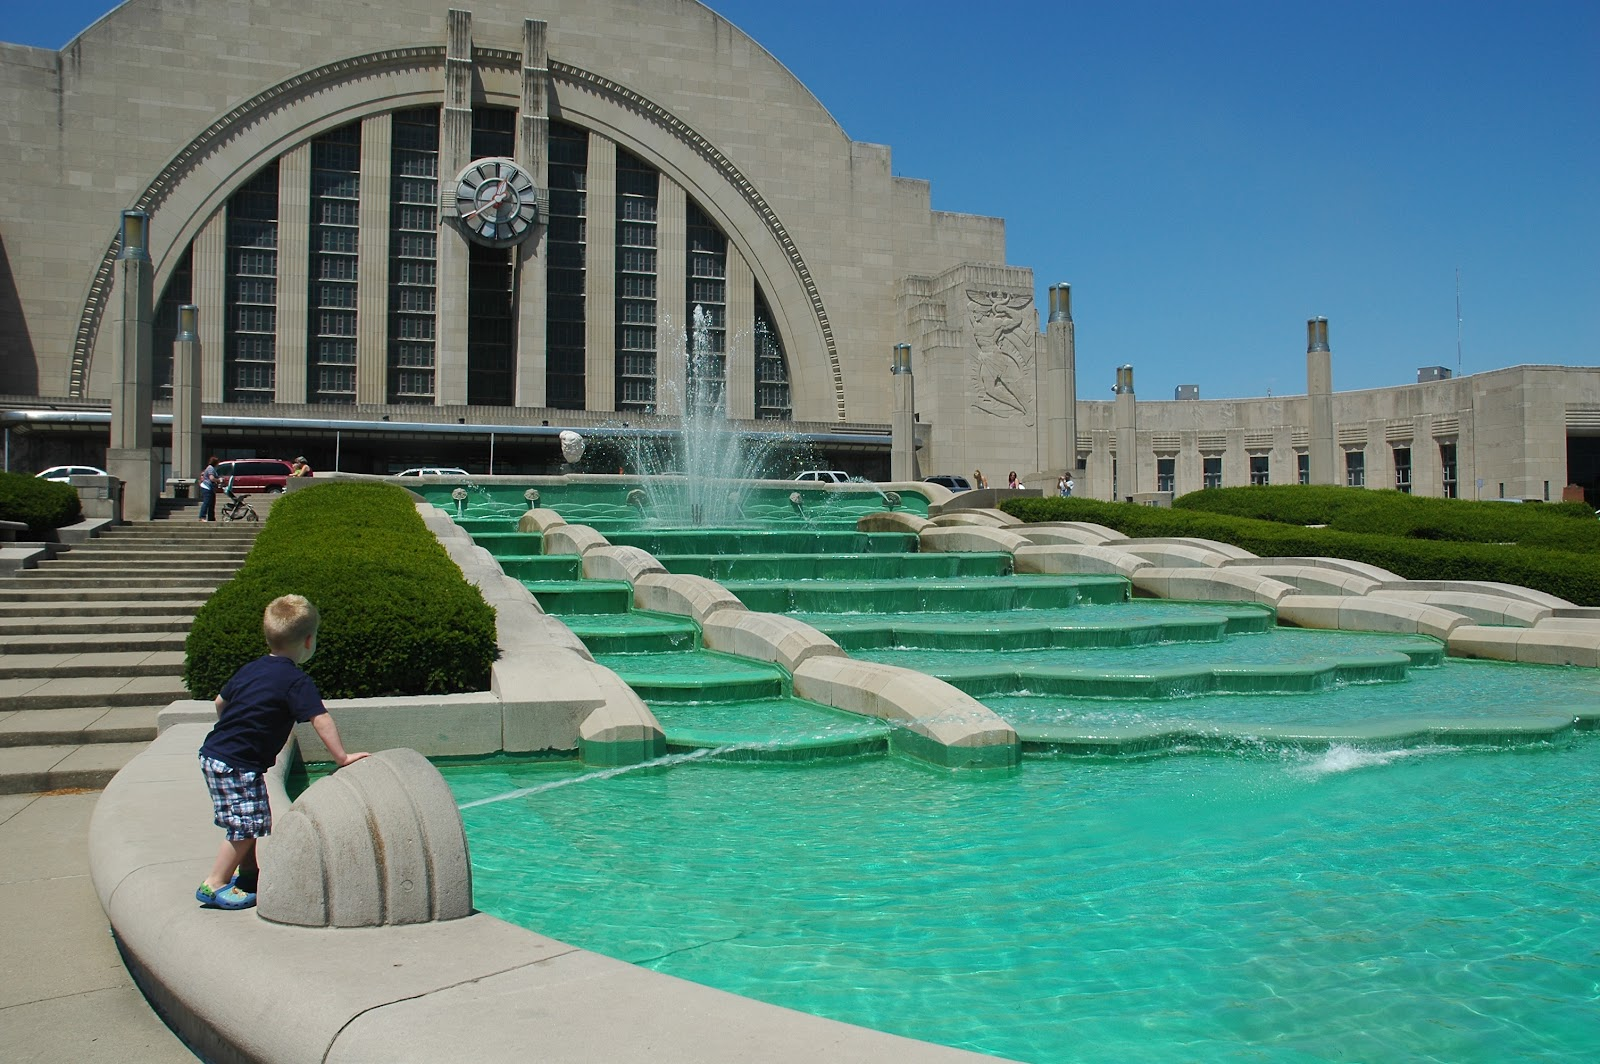 Barbbblog union terminal Museums in cincinnati ohio